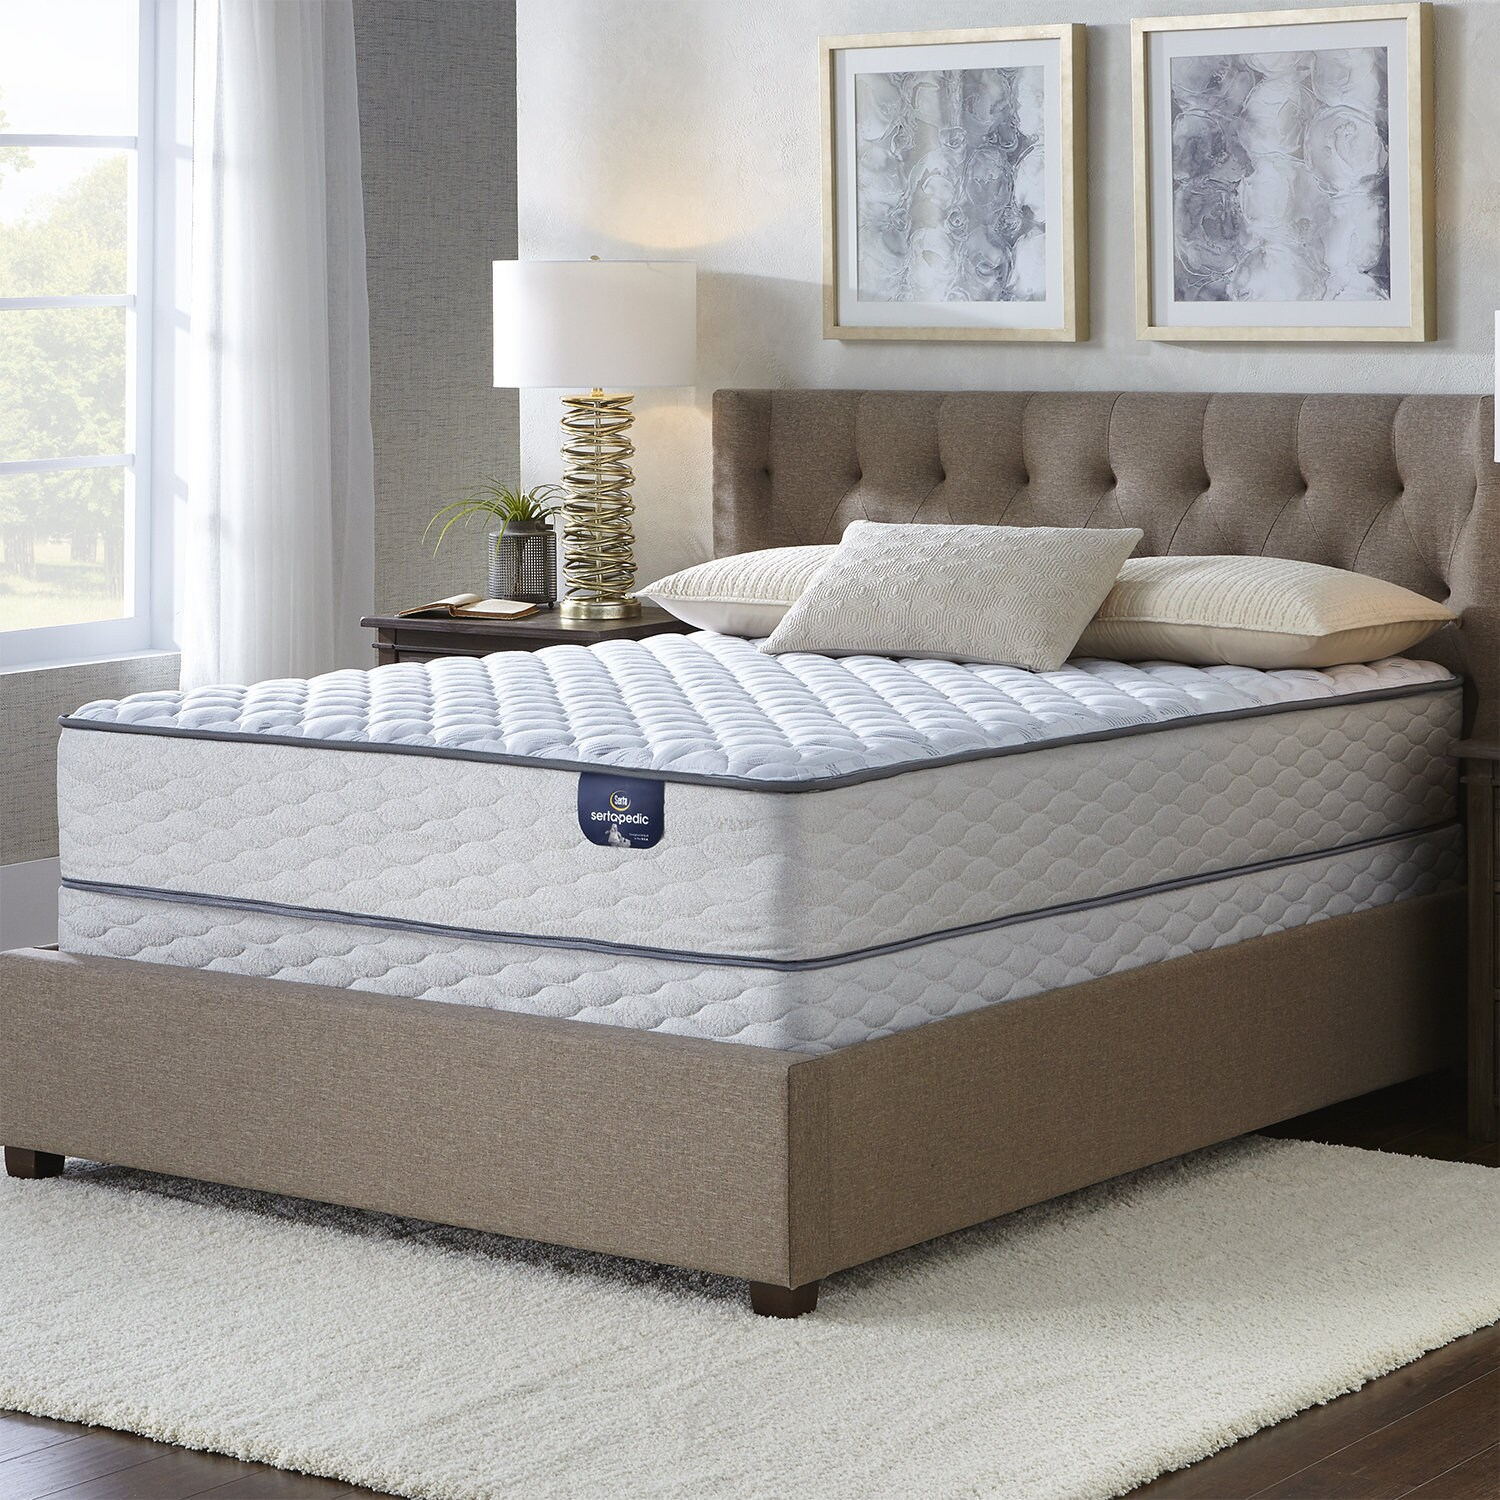 design queen lovely foam serta twin of home kohls mattress protector i images memory unique xl topper fort